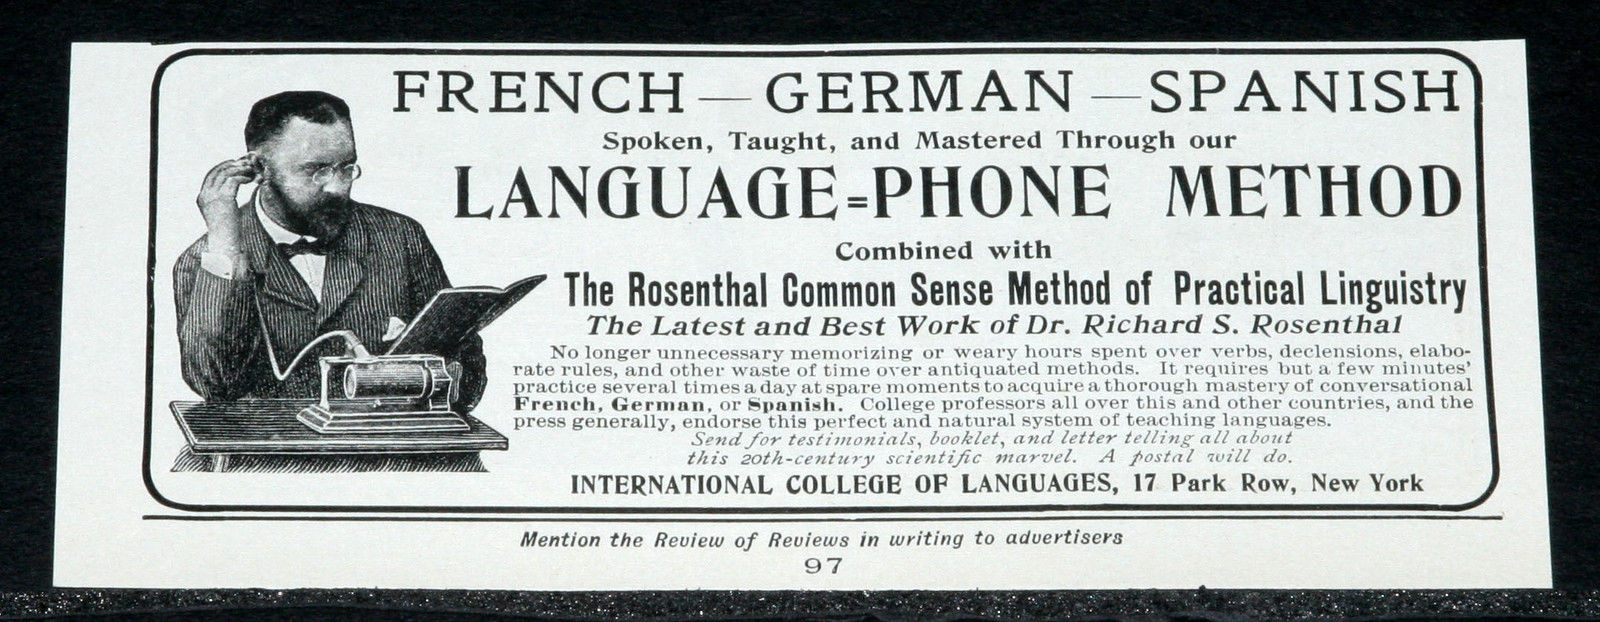 Language Phone advertisment .jpg